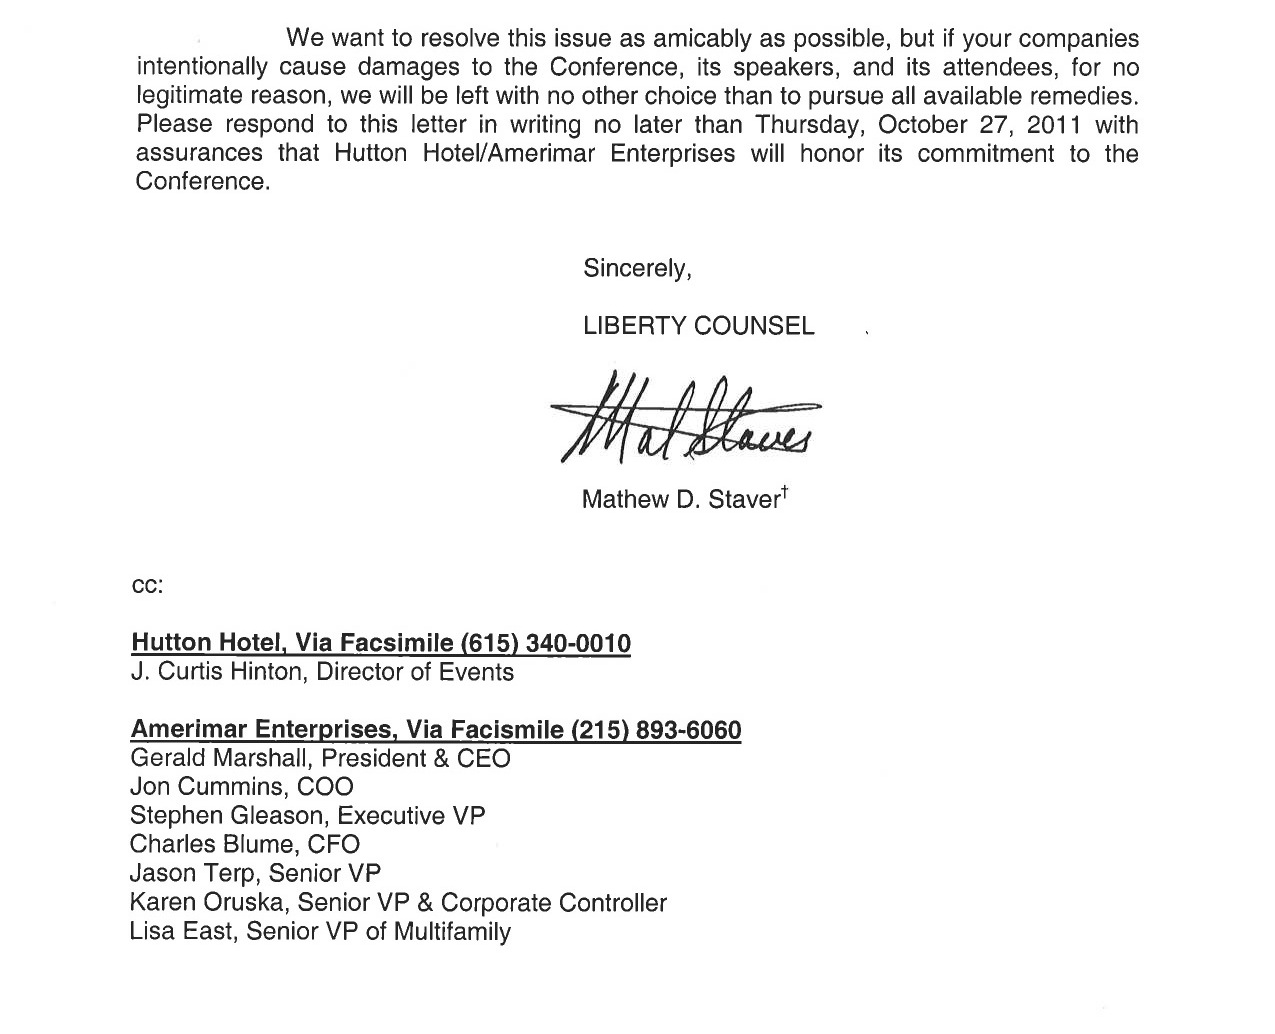 Liberty Counsel Demand Letter To Hutton Hotel Geller Report Ltr44 To Hutton  Hotel And Amerimar Re